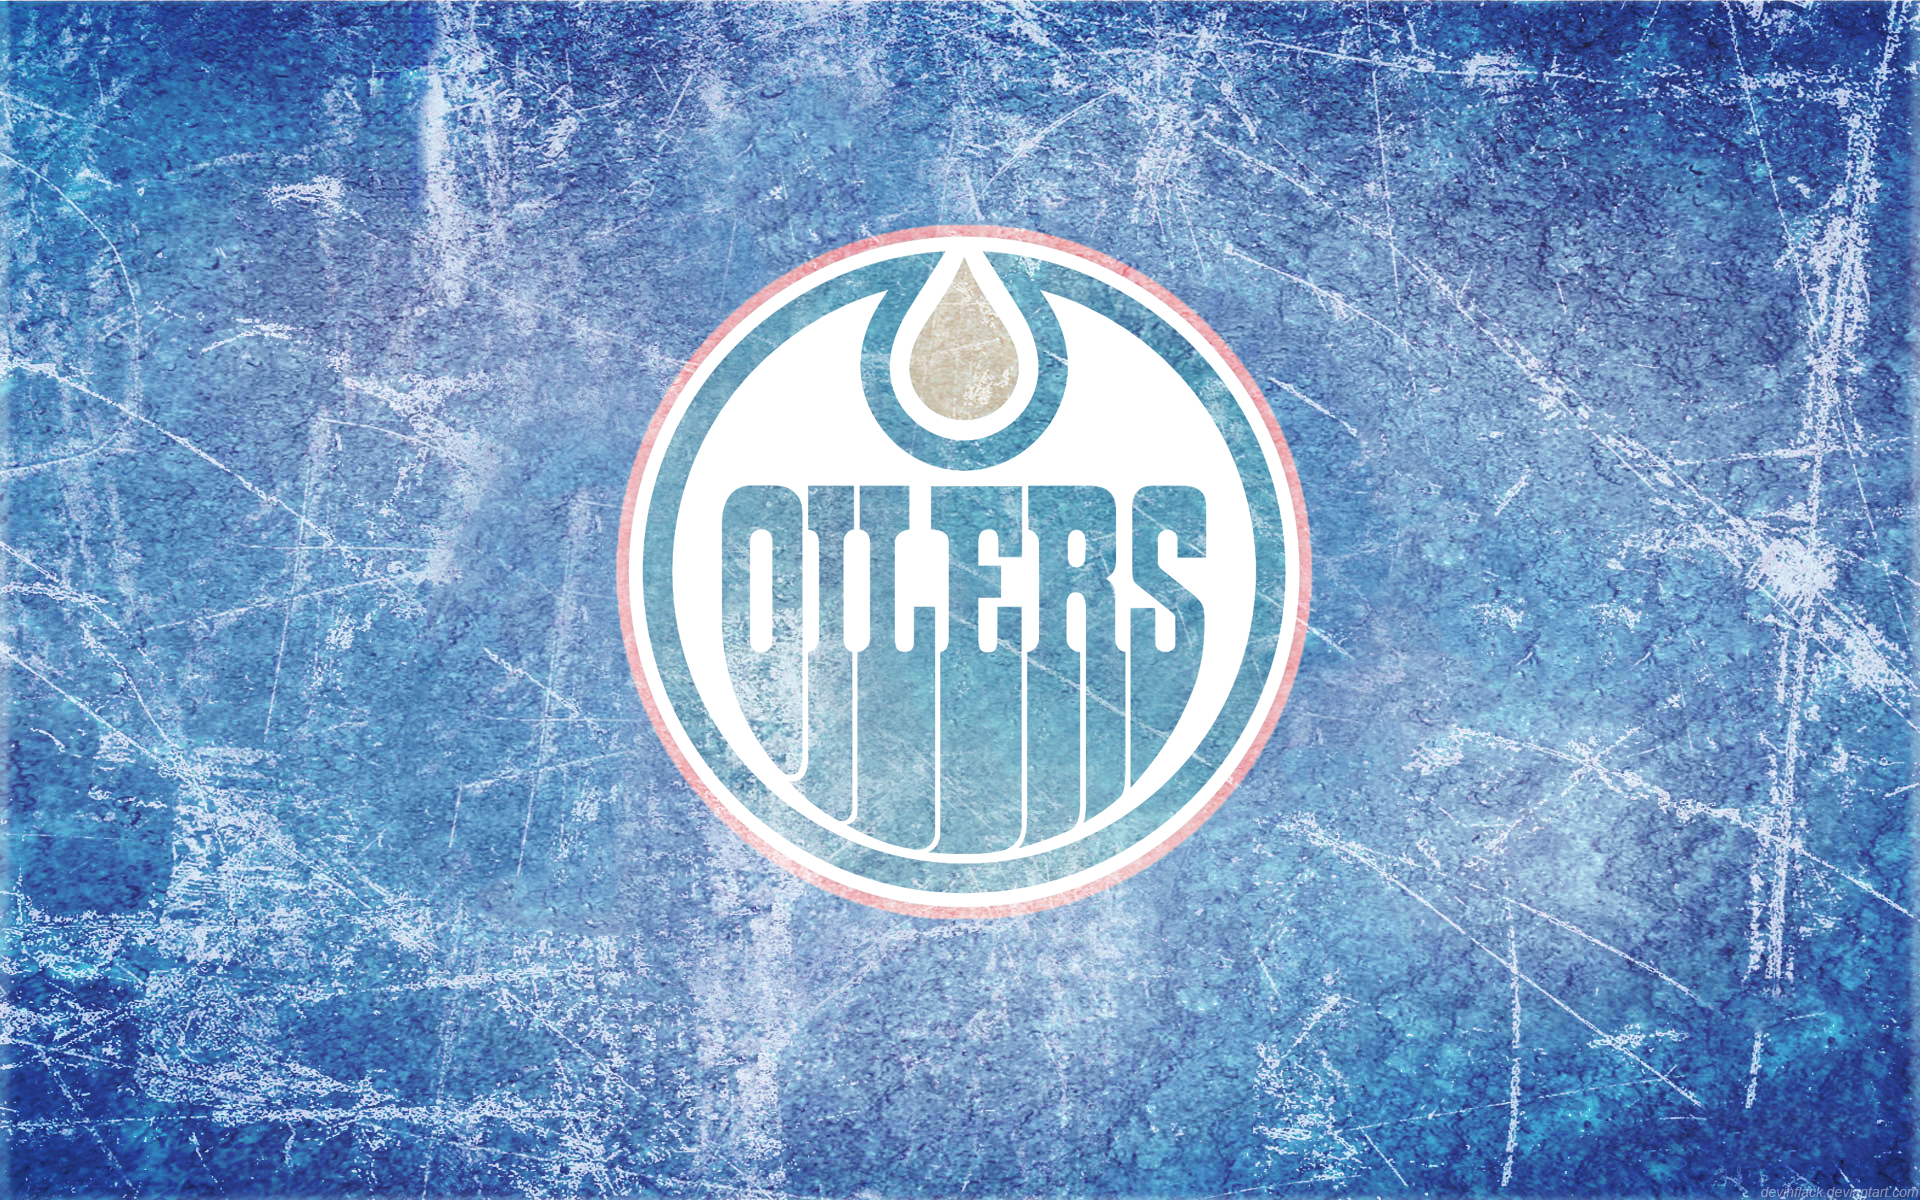 Adorable HDQ Backgrounds of Oilers, 1920x1200 px